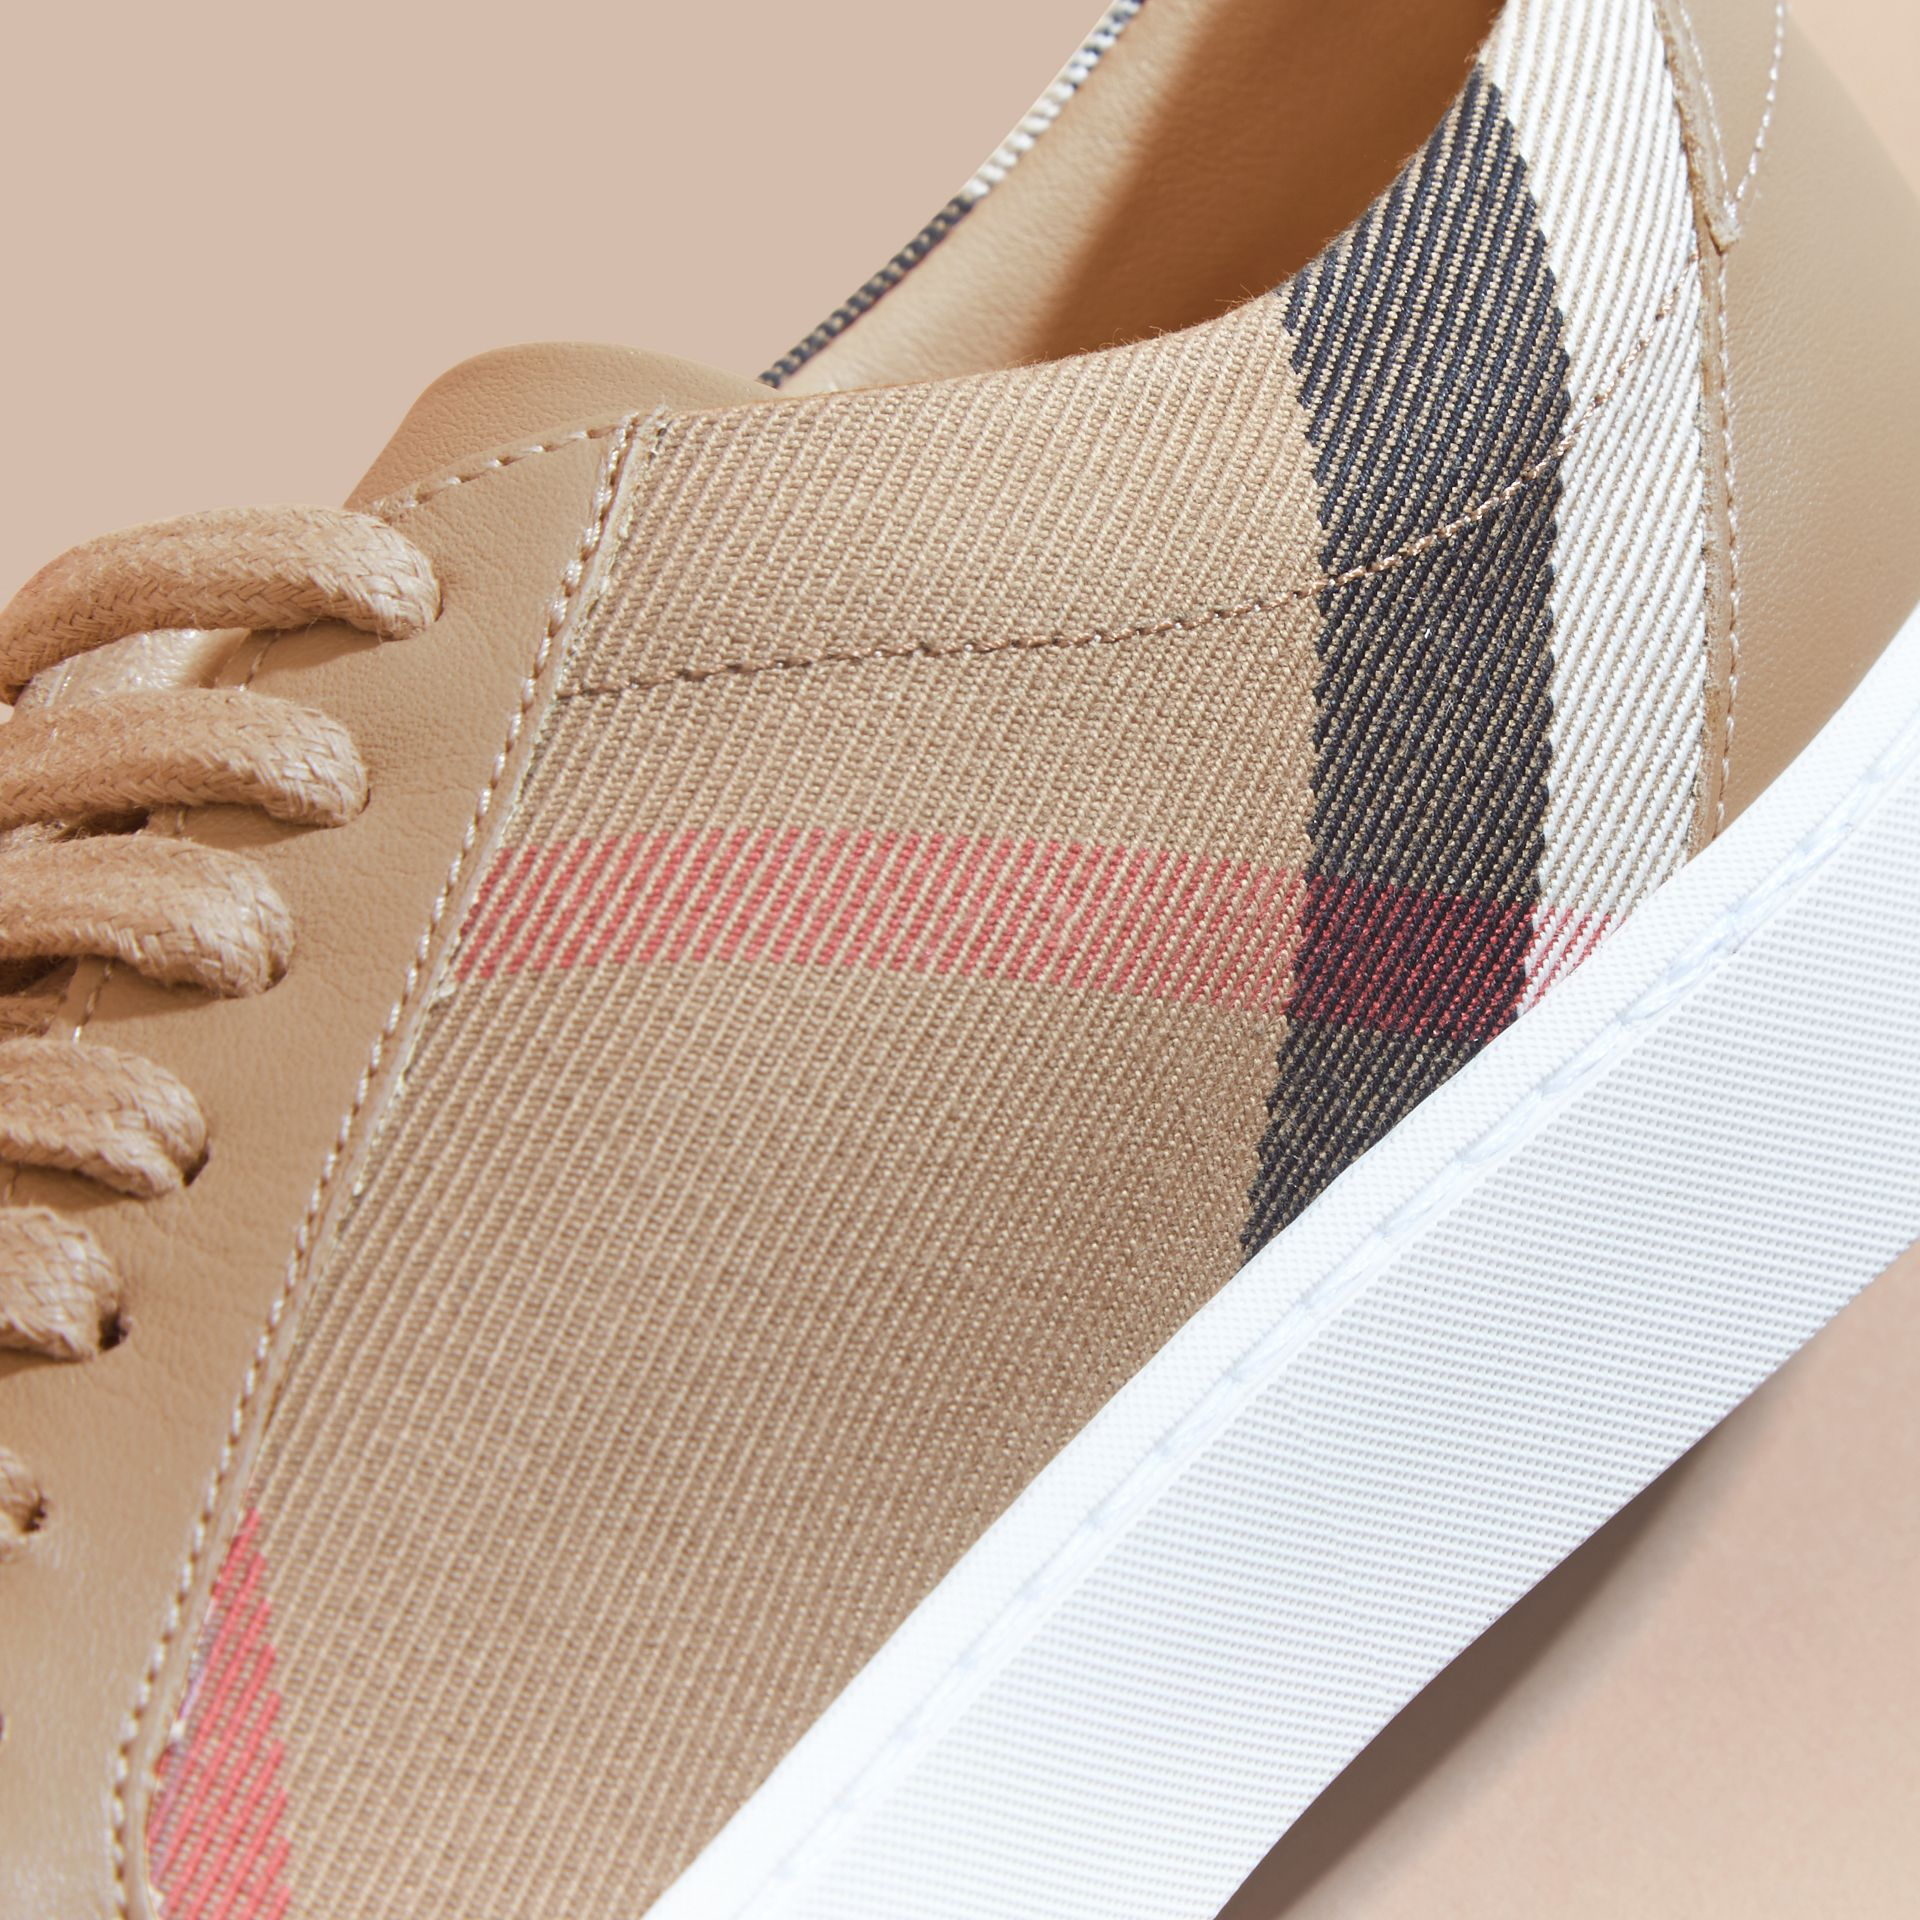 House check/ nude Check Detail Leather Sneakers House Check/ Nude - gallery image 2